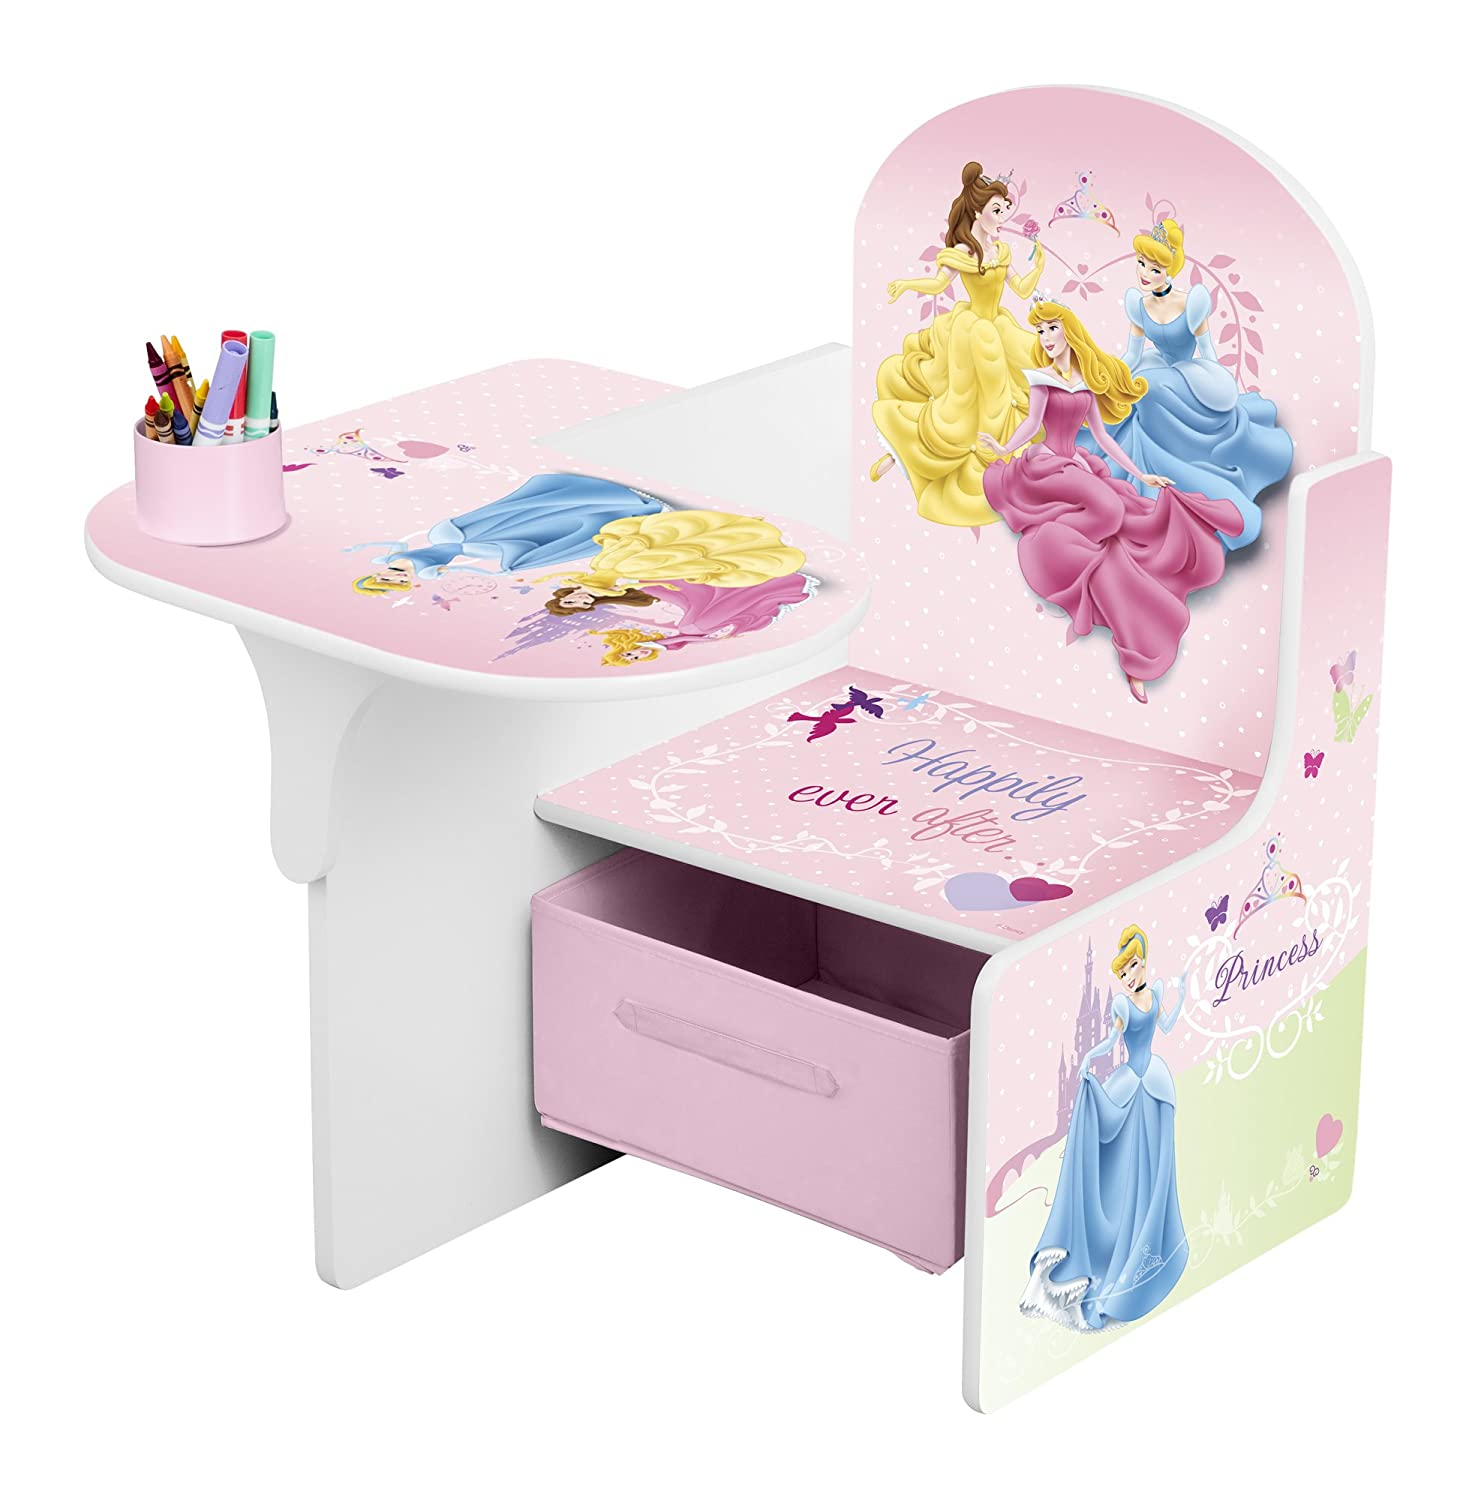 Disney Princess Chair Desk with Storage Bin Amazon Kitchen